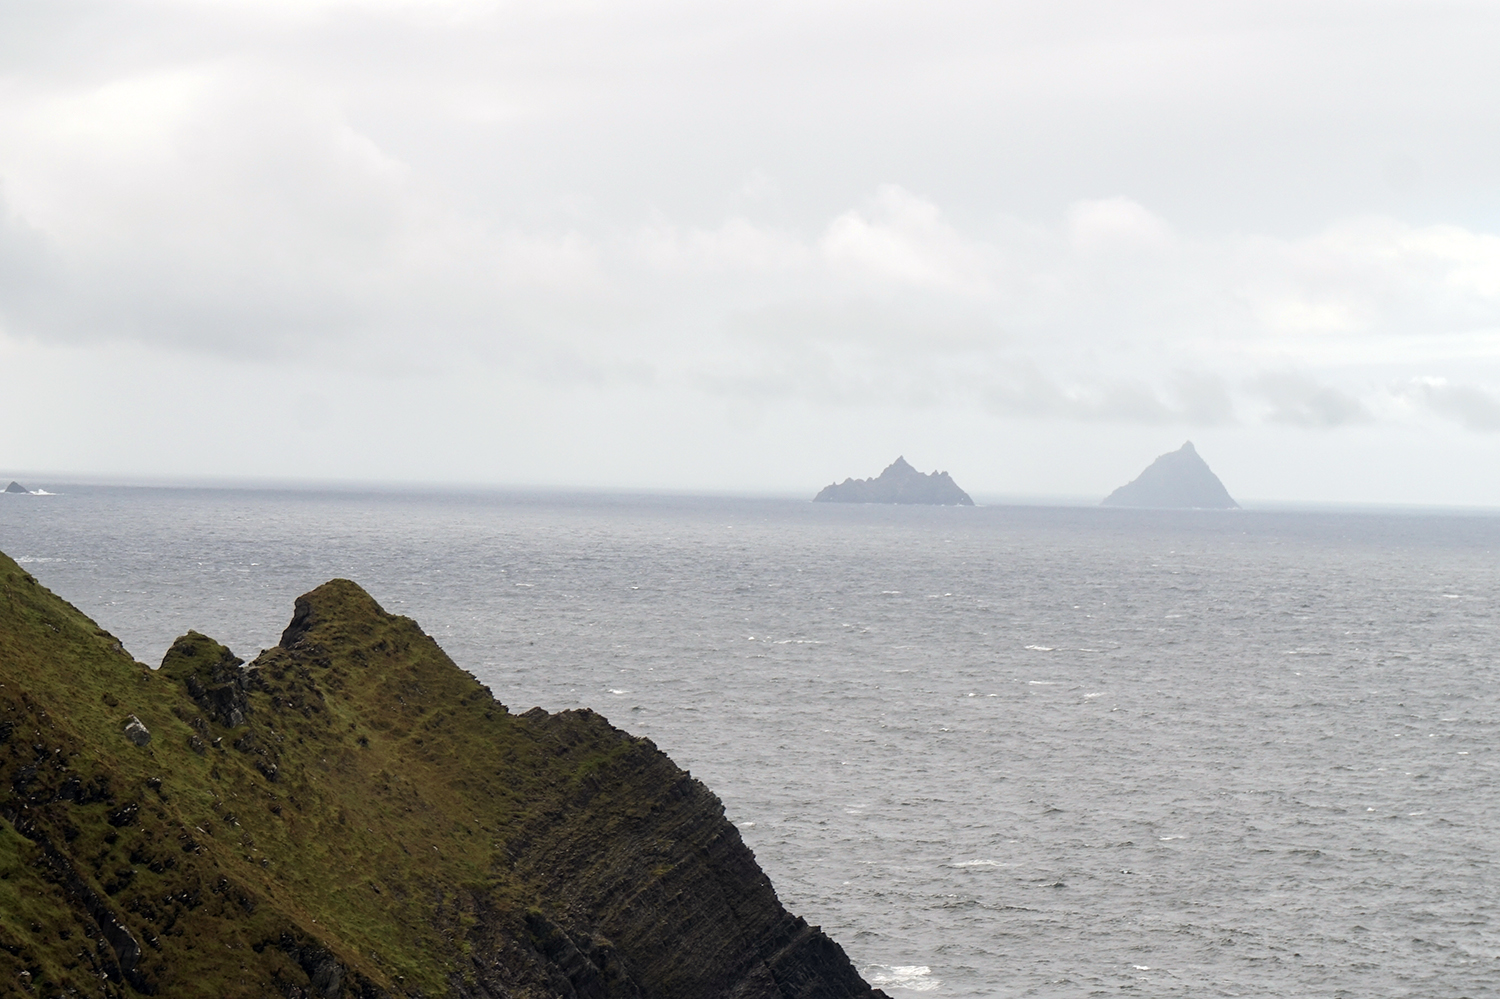 Skellig Michael, old monastery